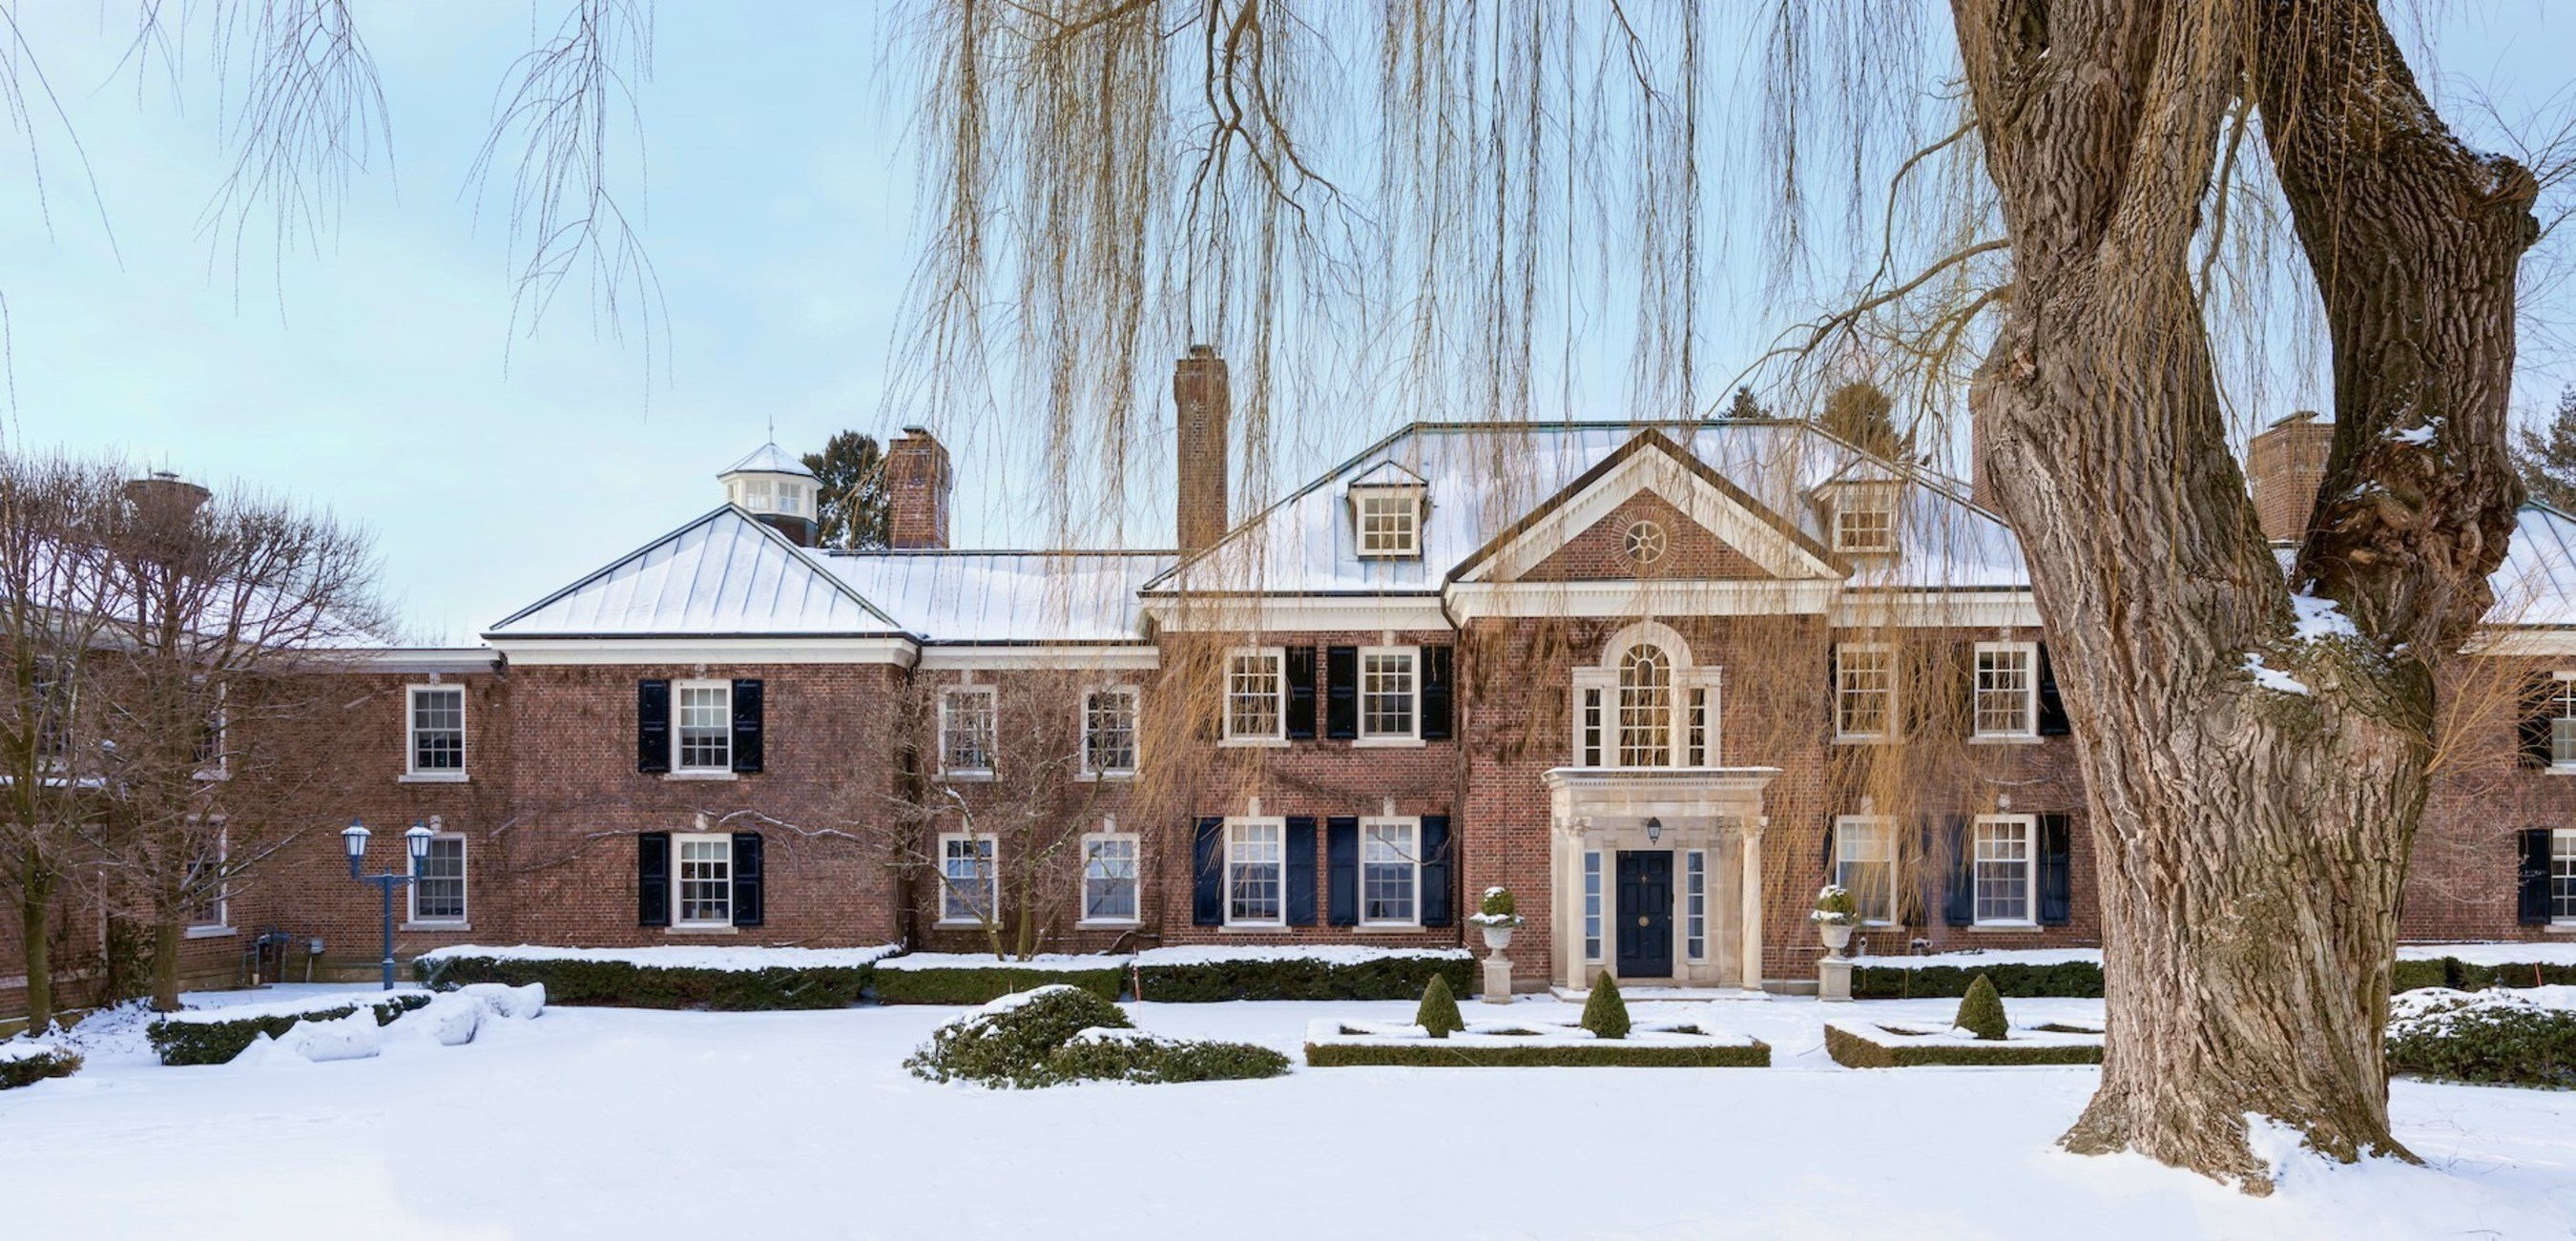 Magnificent Toronto Mansion - One Of The Finest And Most Renowned Homes In Canada - Offered For